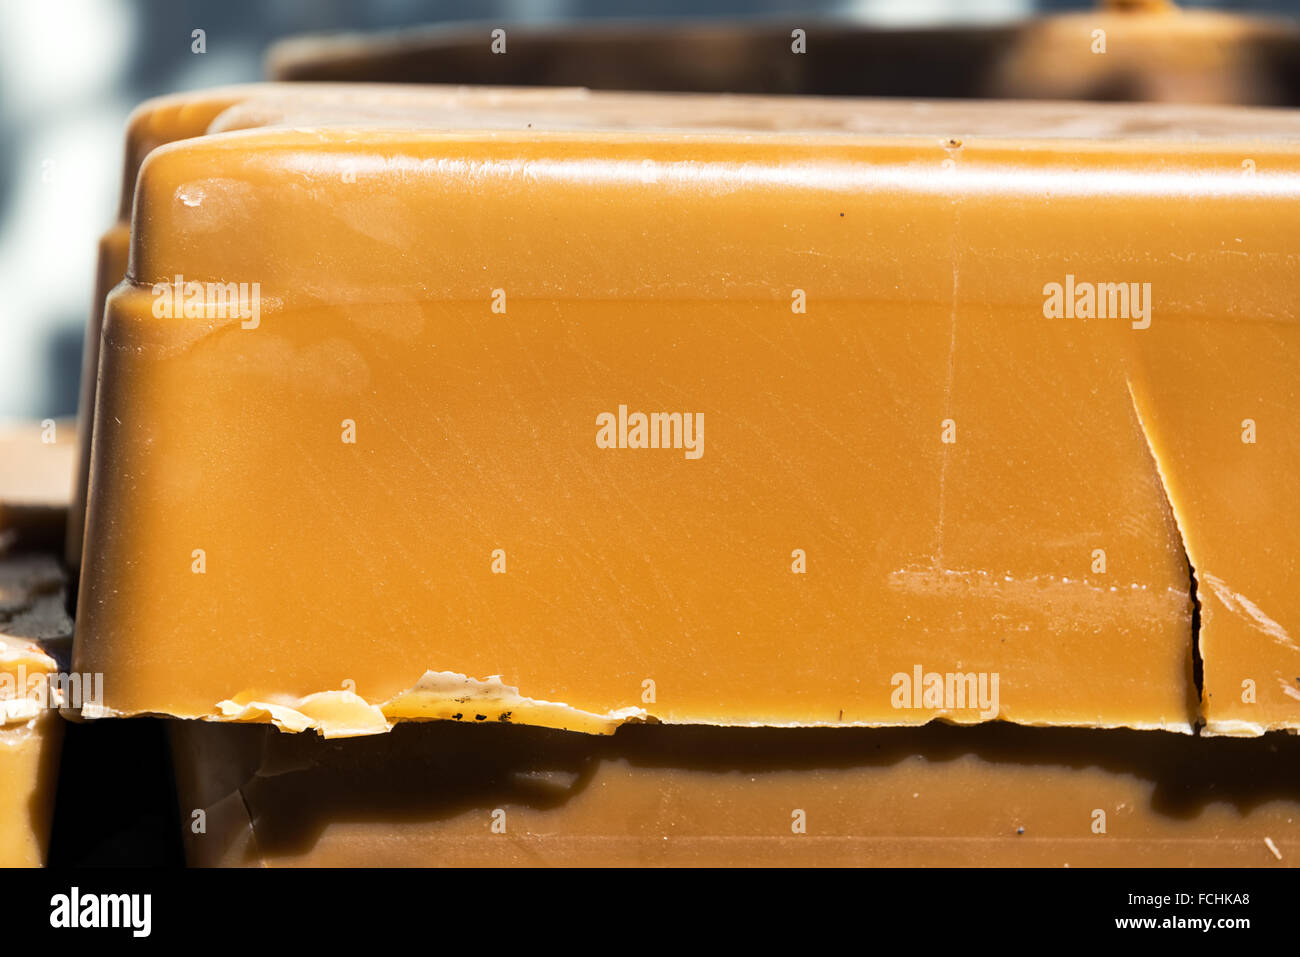 Closeup view of a brick of beeswax in Buffalo, Wyoming - Stock Image